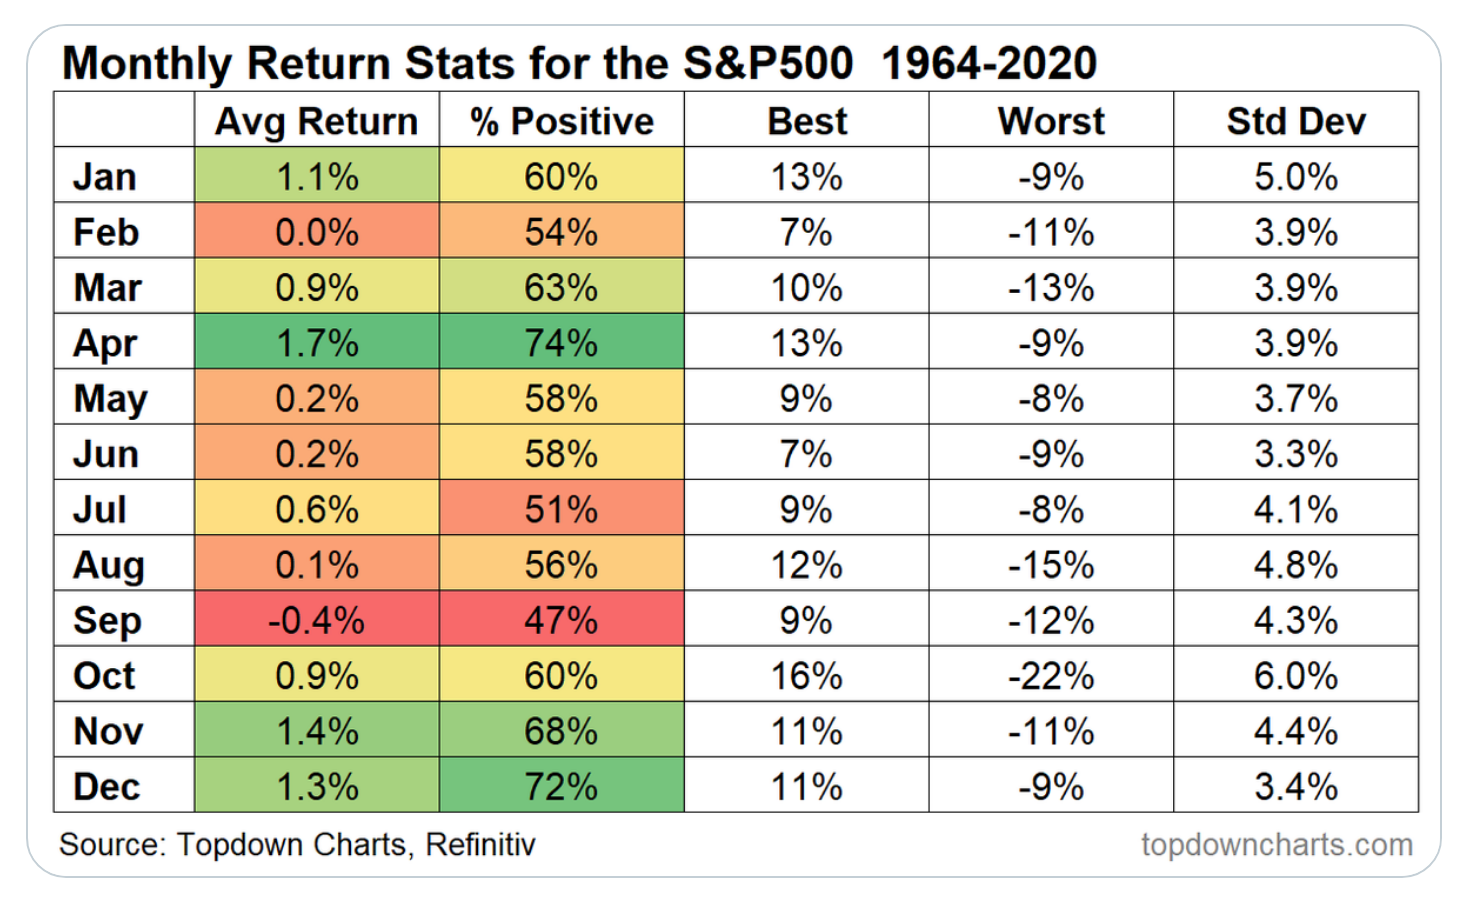 Monthly Return Stats forthe S&P 500